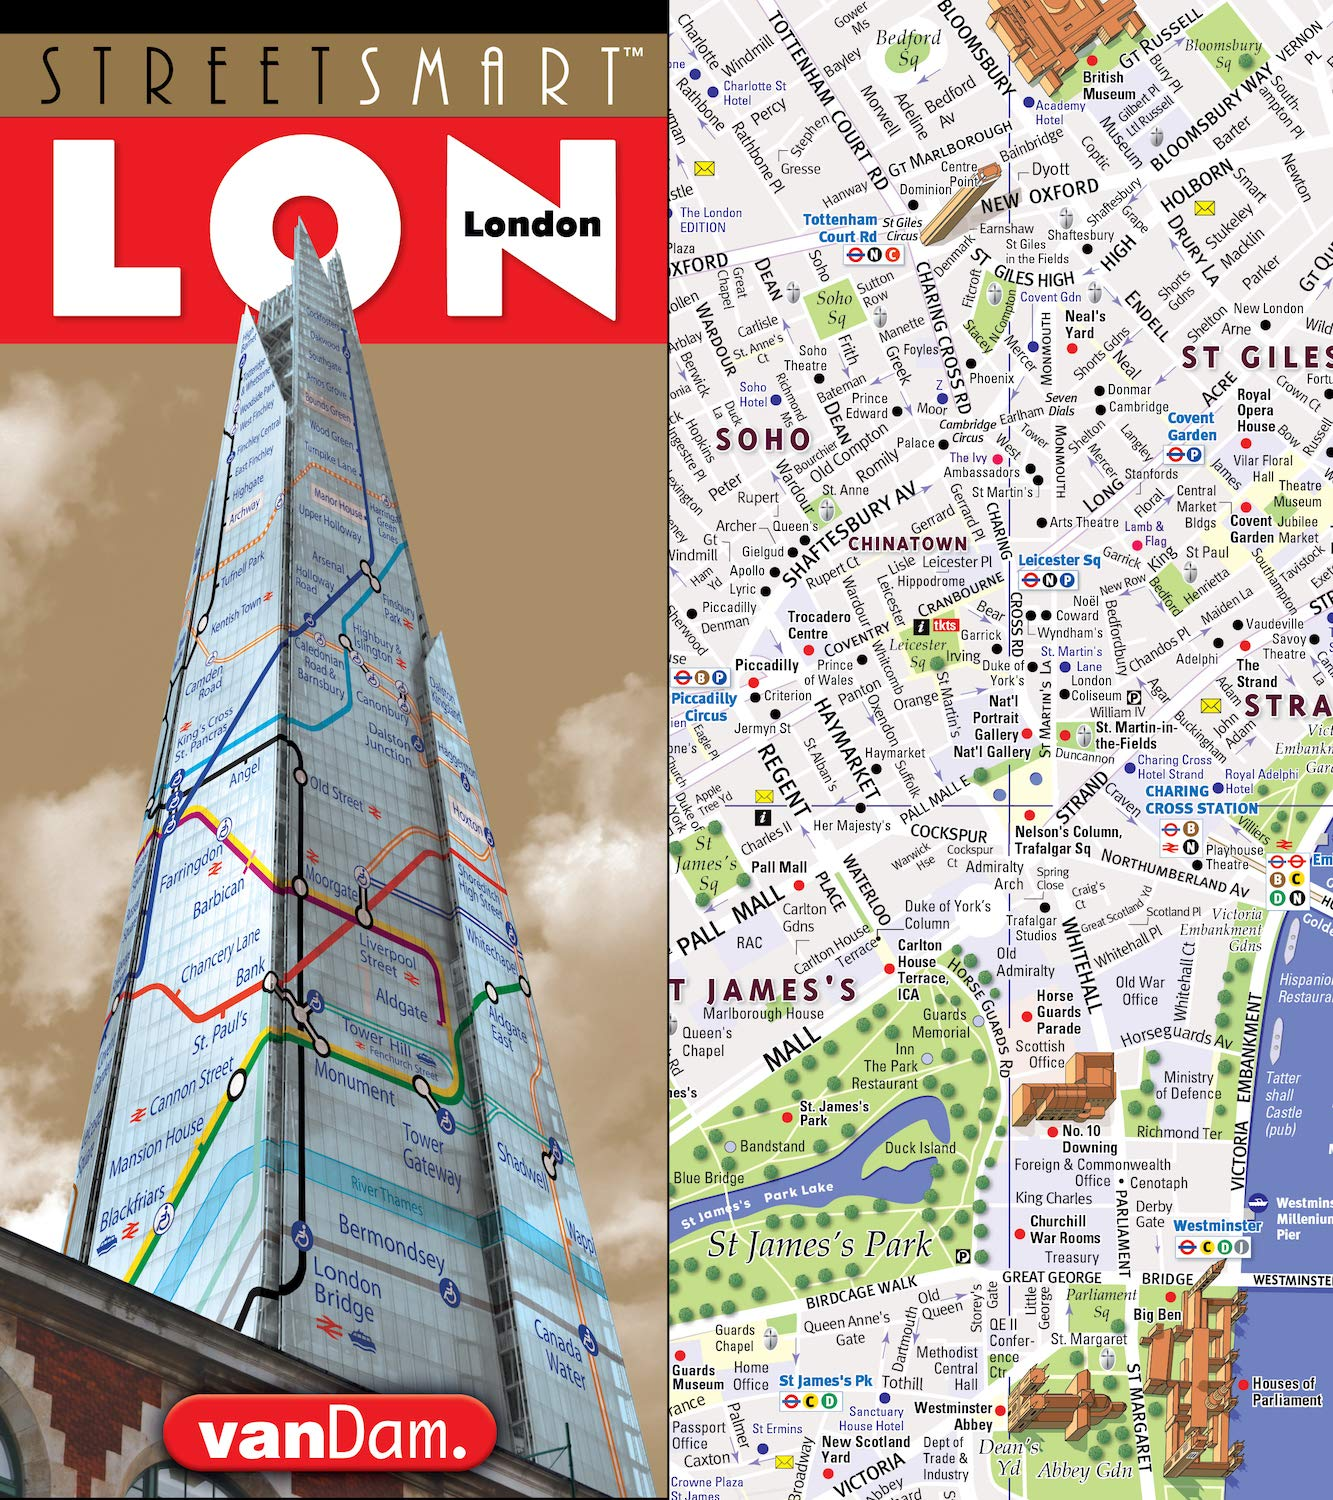 A Map Of London England.Streetsmart London Map By Vandam City Center Street Map Of London